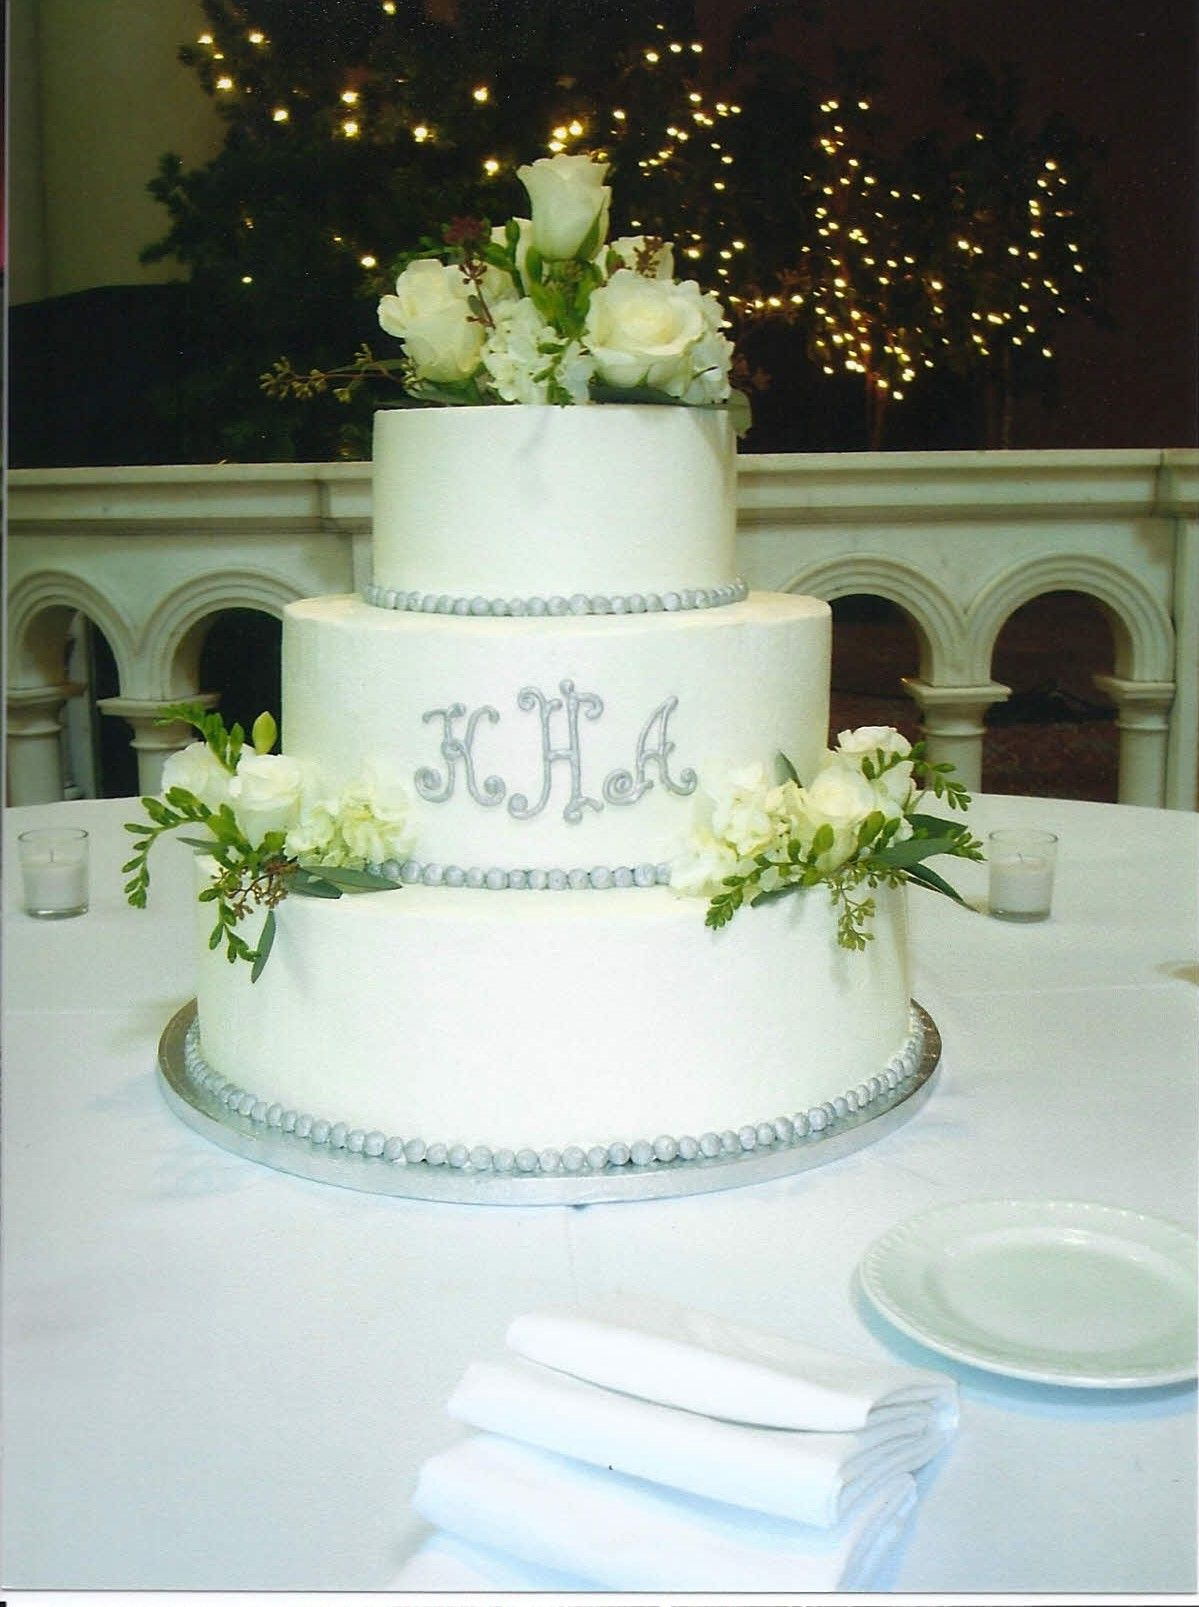 3 tier white initial wedding cake with grey trim | Small wedding ...